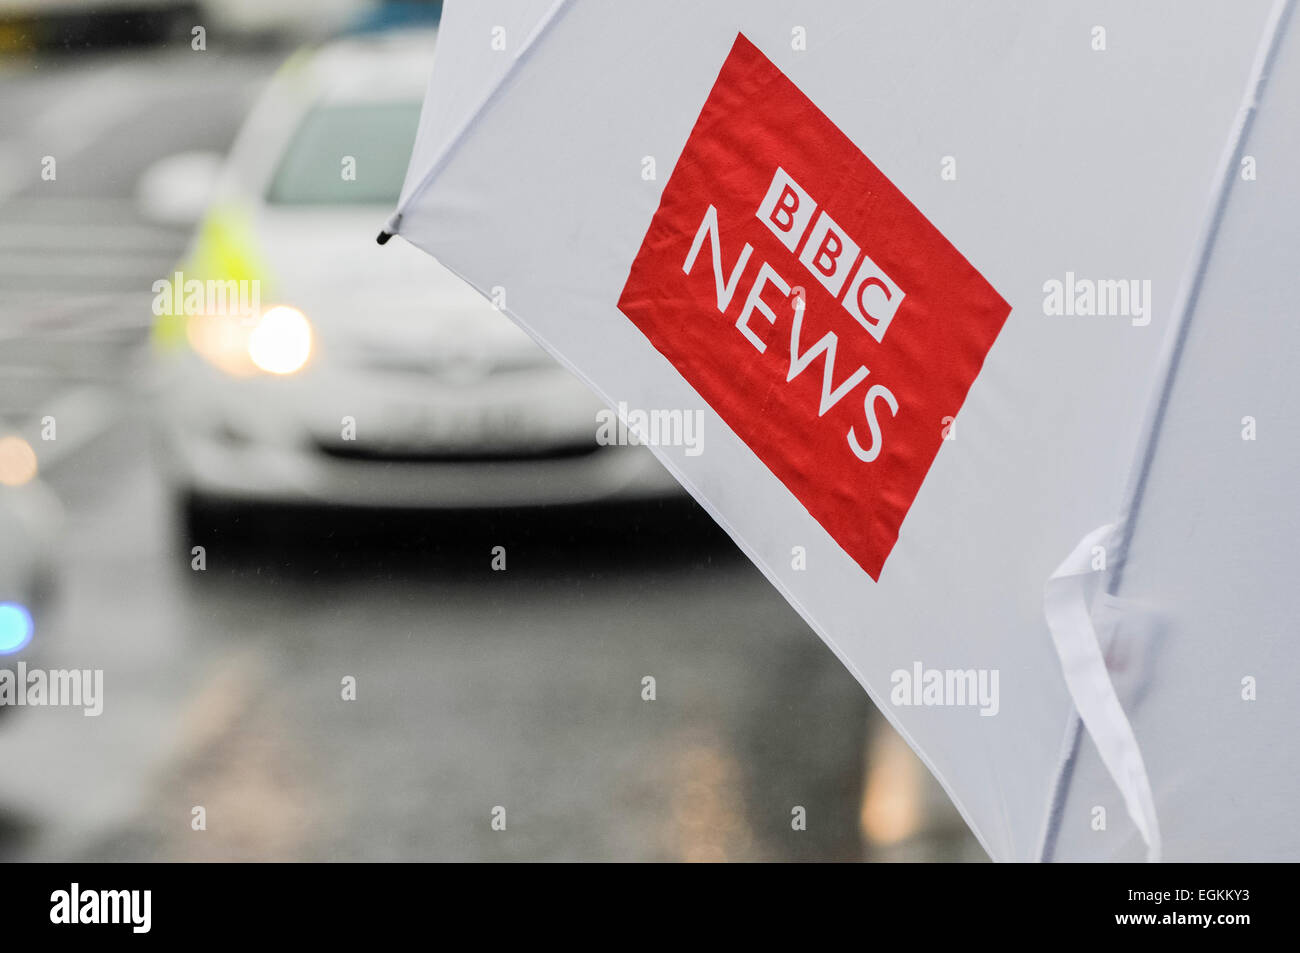 Ballyclare, Northern Ireland. 11th September 2013 -  Journalist holds a BBC News umbrella while watching police - Stock Image